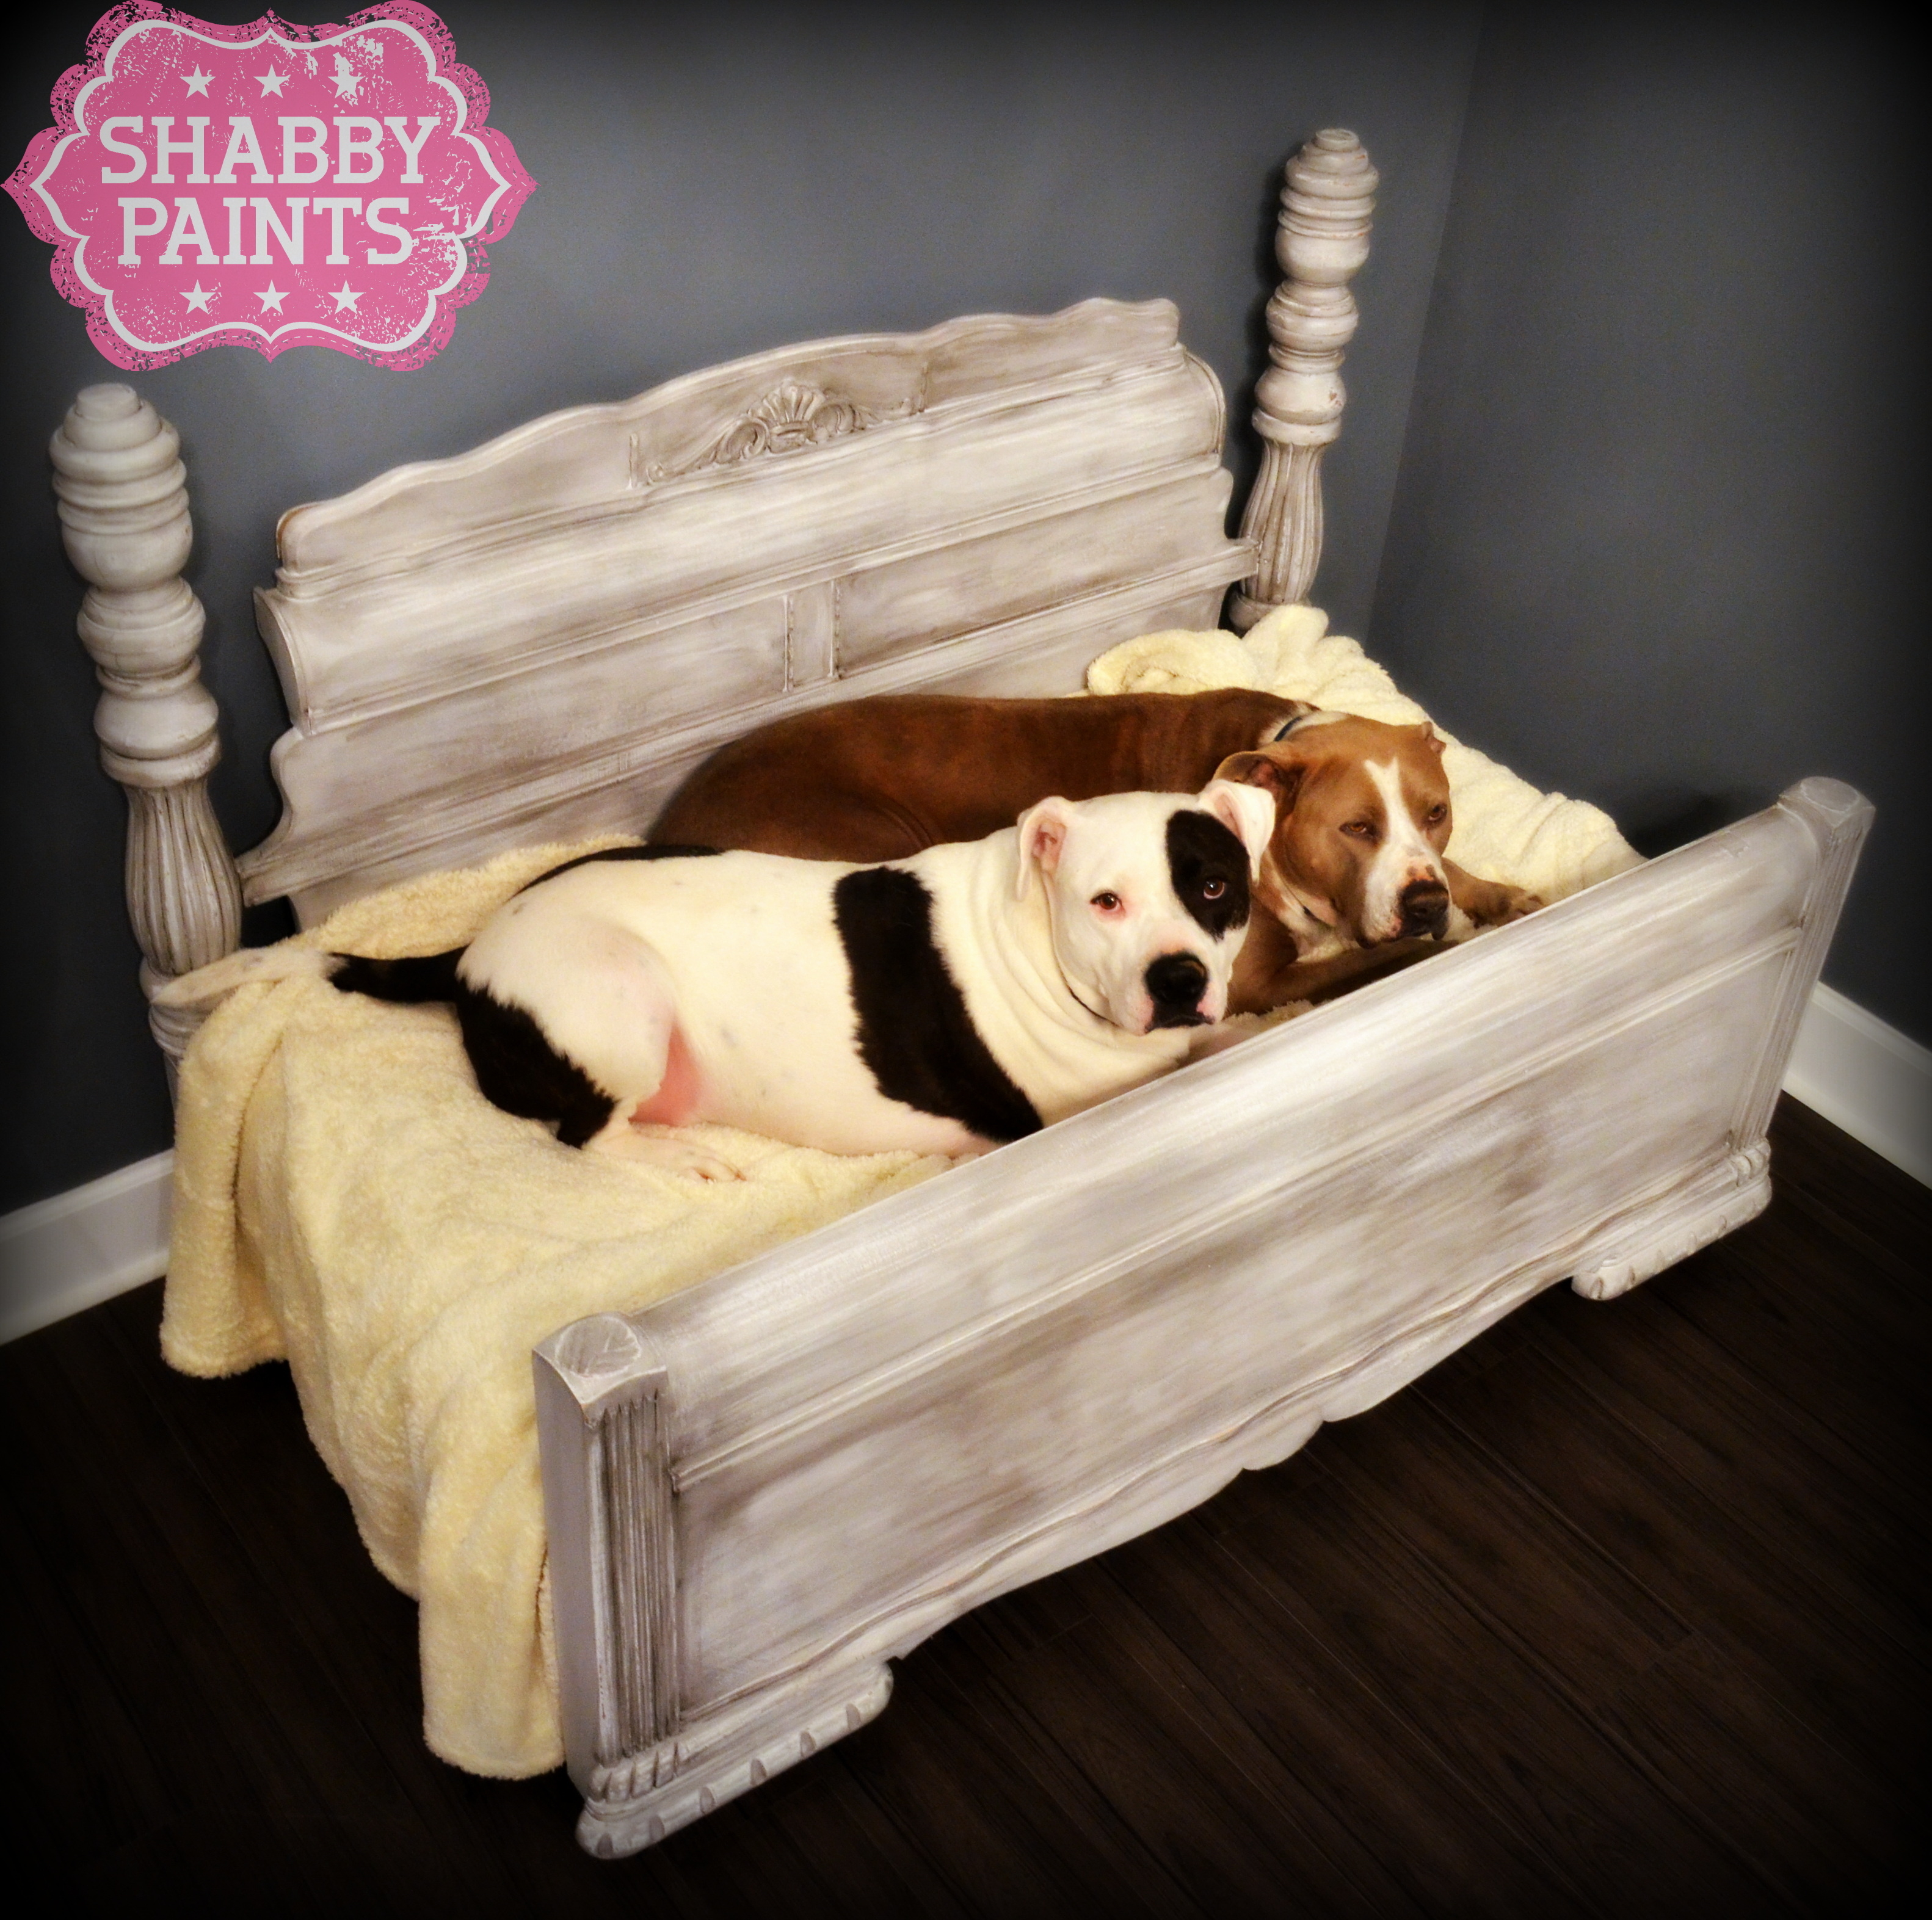 Upcycled pet beds transformed with shabby paints shabby for Interior design dog bed